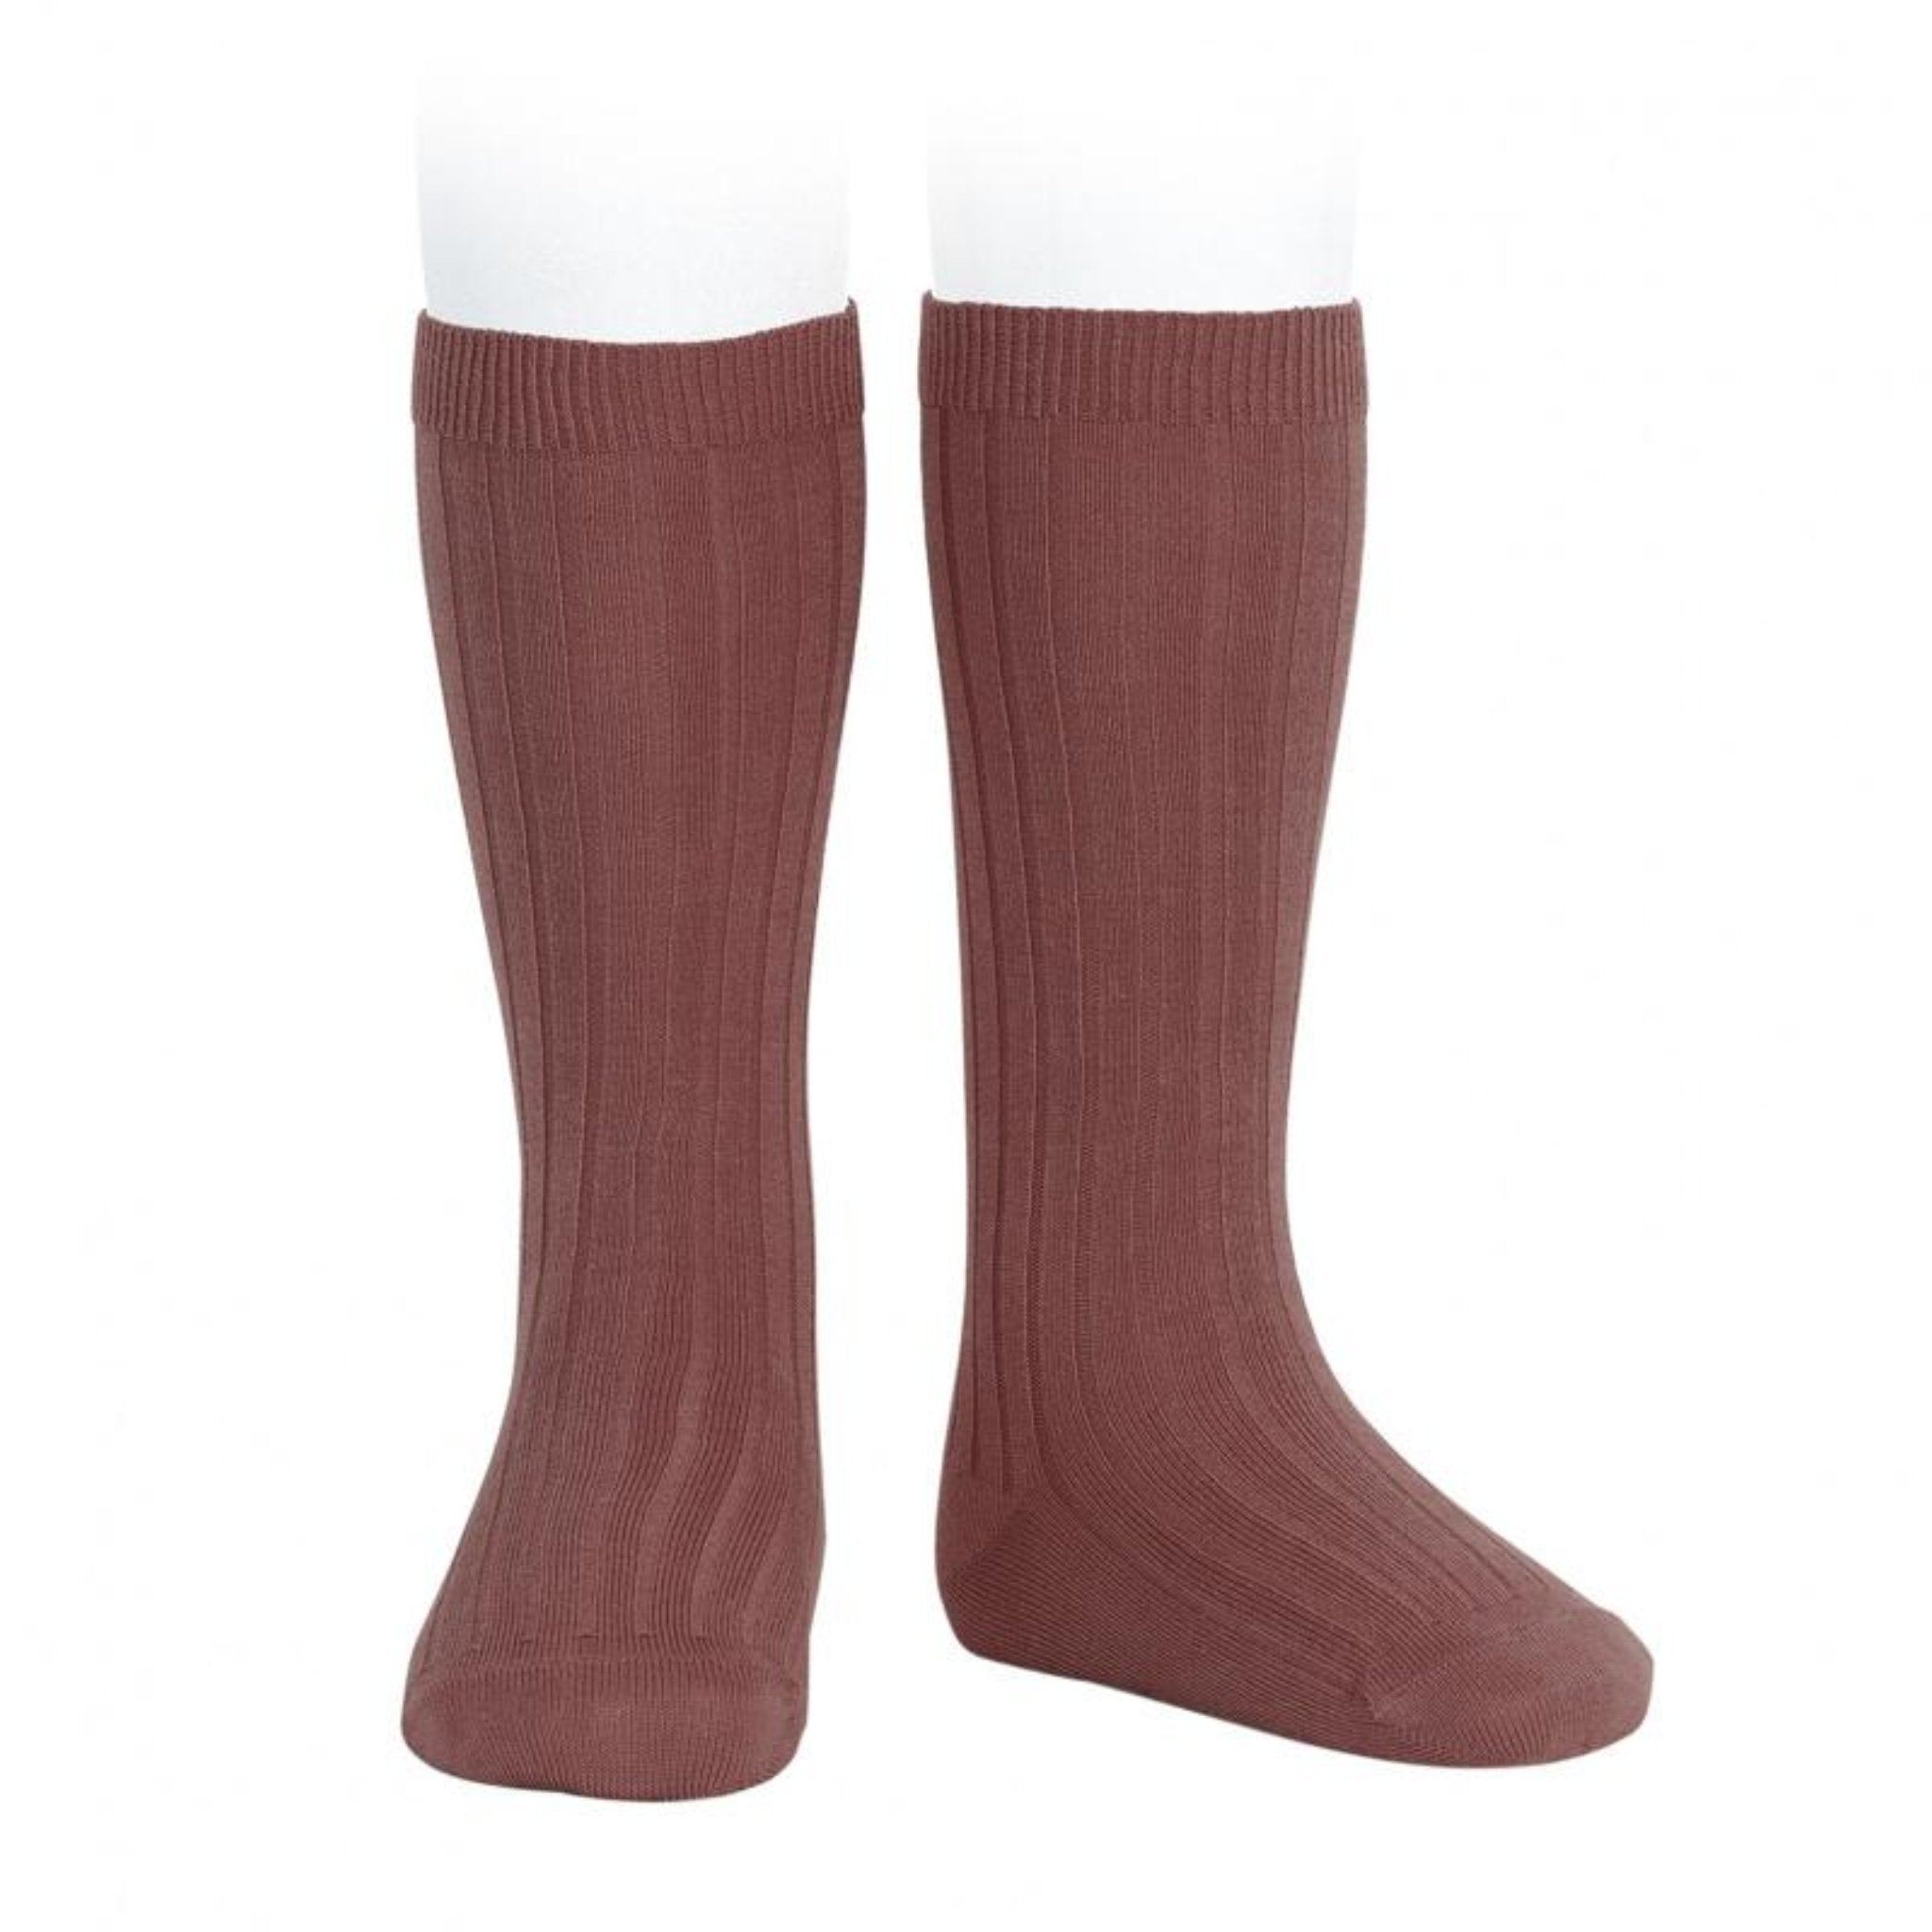 CONDOR Wide Ribbed Cotton Knee High Socks Marsala (#599)